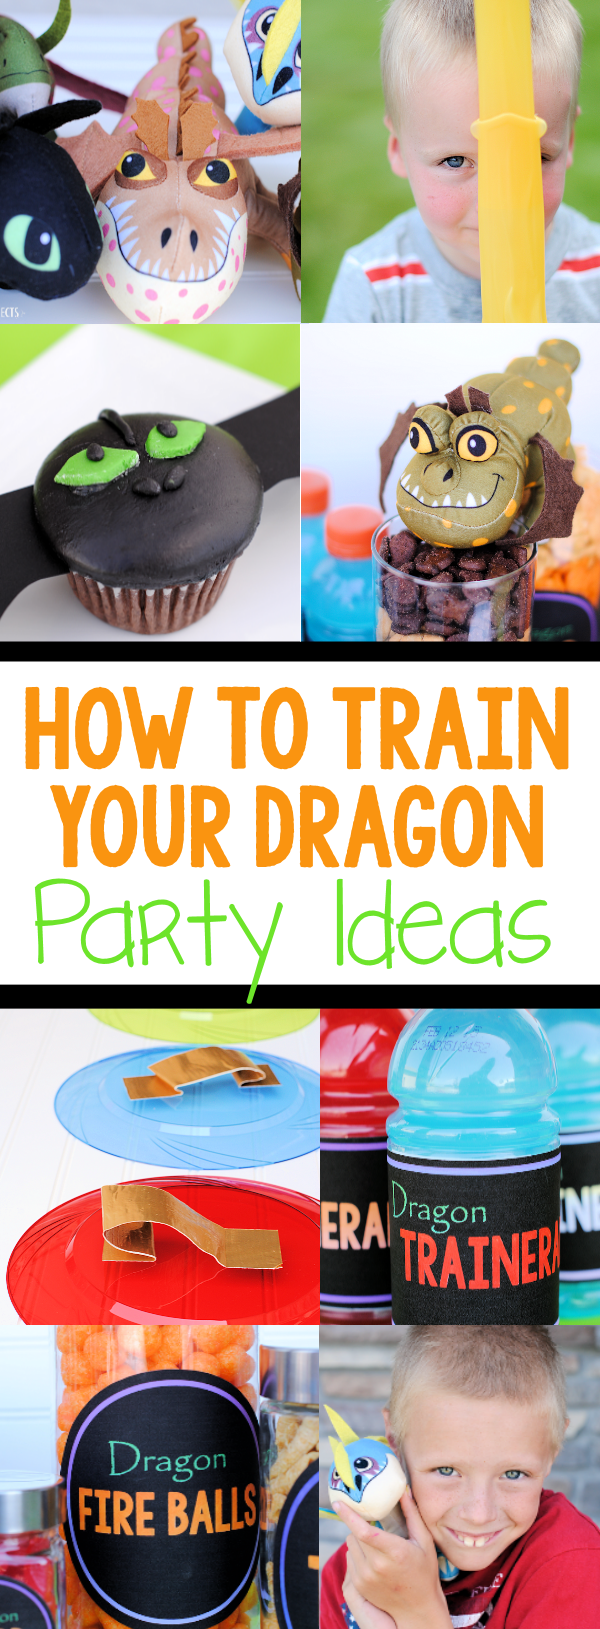 How to Train Your Dragon Party Ideas-Cute cupcakes, fun games, printables and more to make your birthday party great! #birthday #partyideas